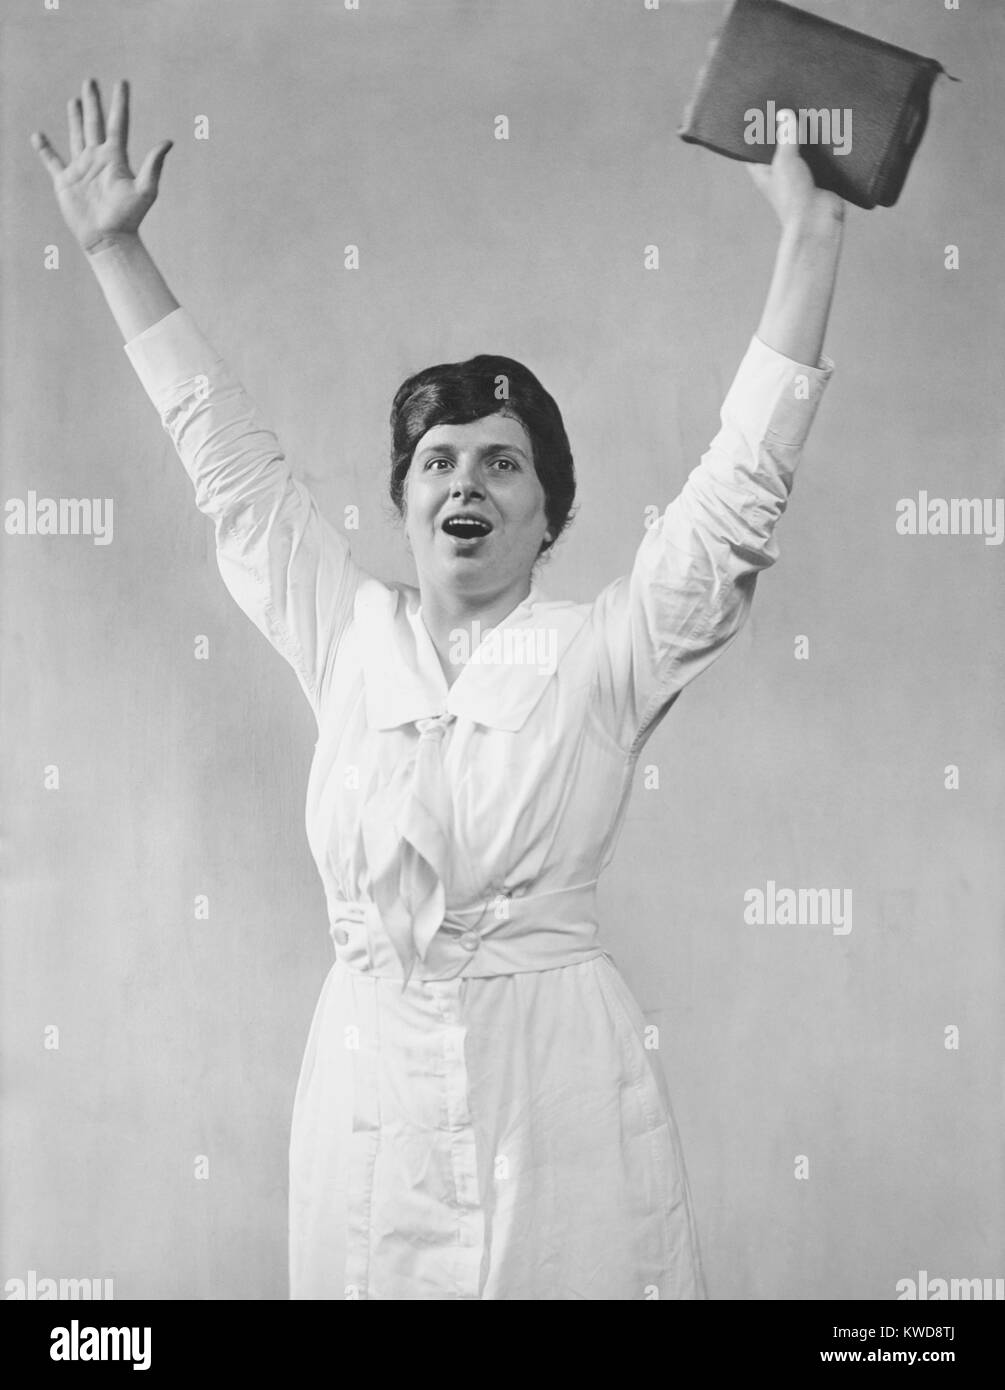 Aimee Semple McPherson, ca. 1920, was a Canadian-American, celebrity evangelist. The Pentecostal 'Sister Aimee' Stock Photo